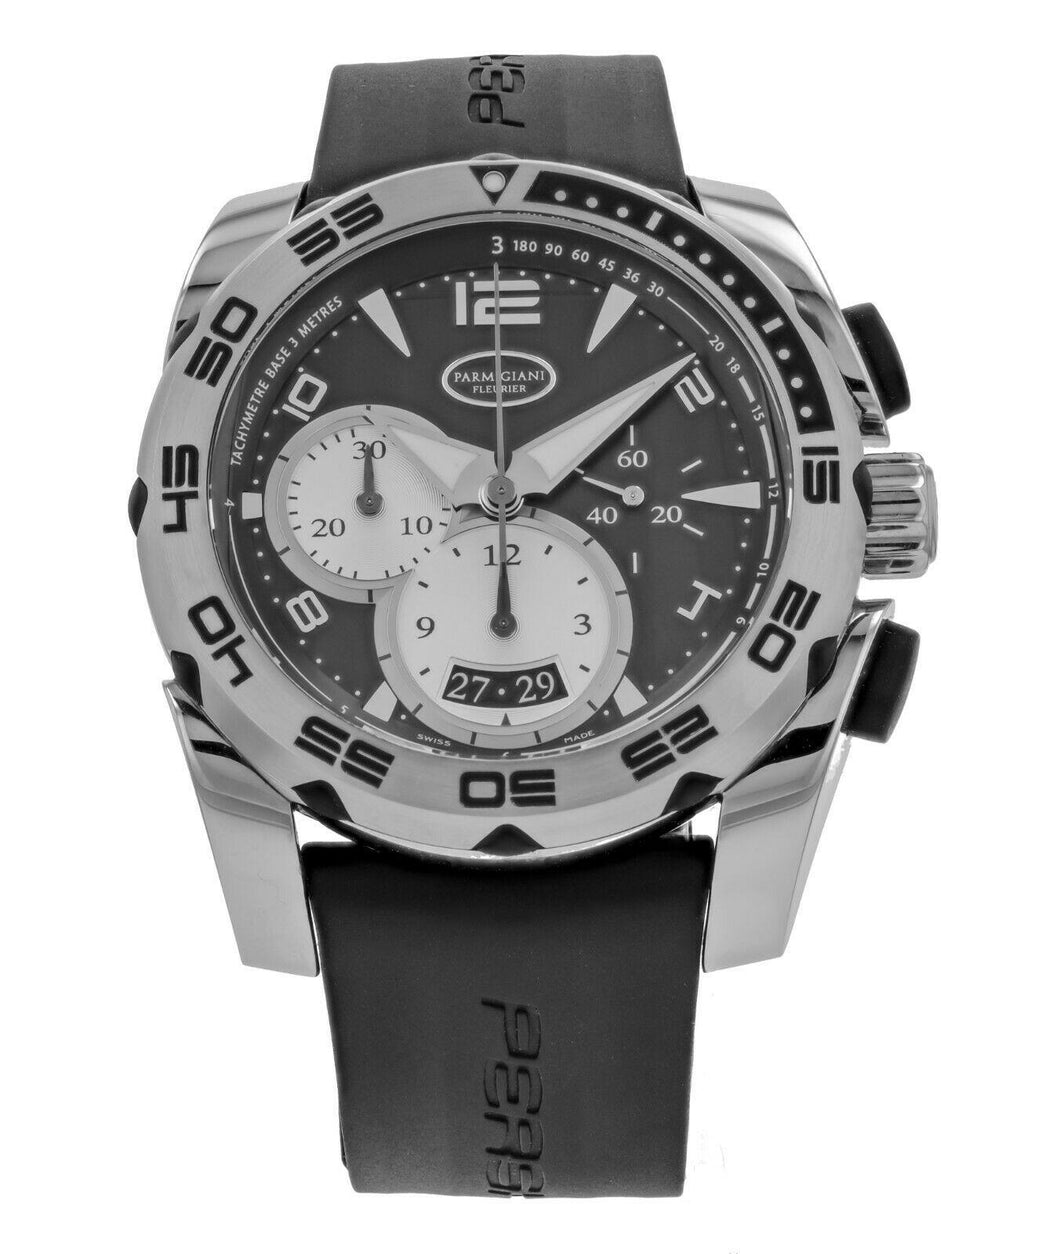 Parmigiani Pershing 005 45mm Chronograph Men's Automatic Watch PF601396-06